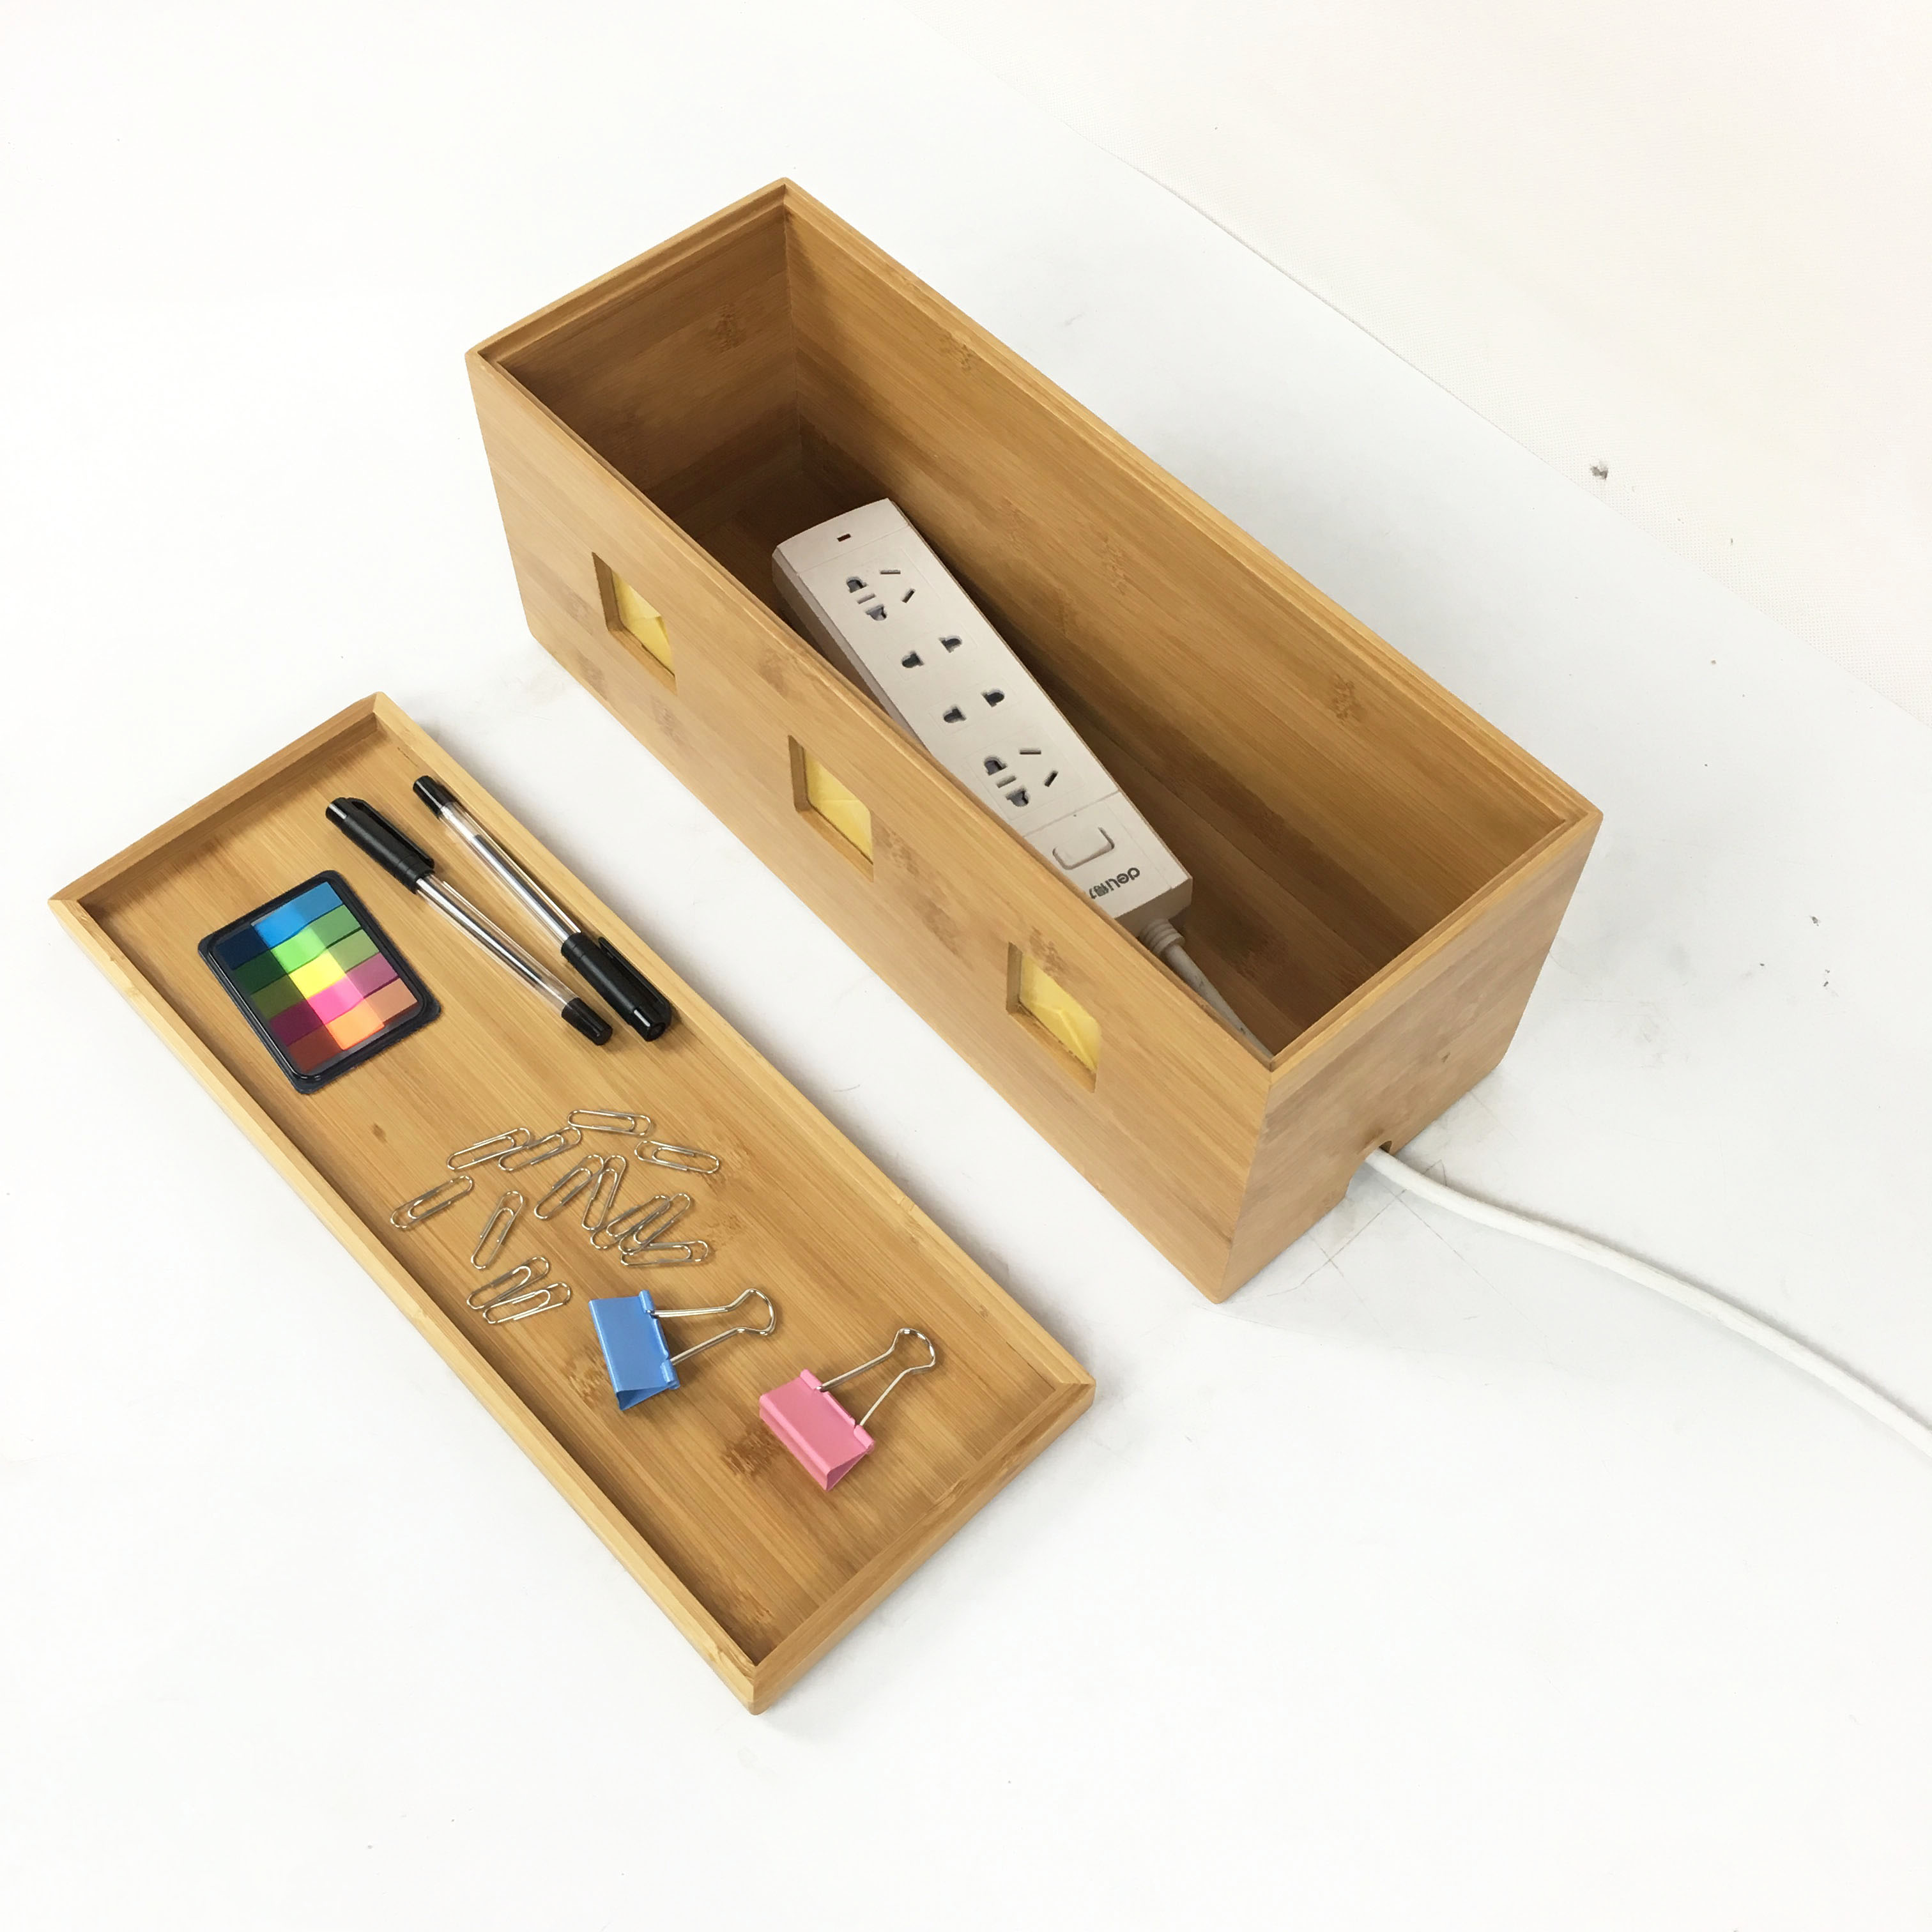 Bamboo Cable Management Box For Desk From Homex Homex